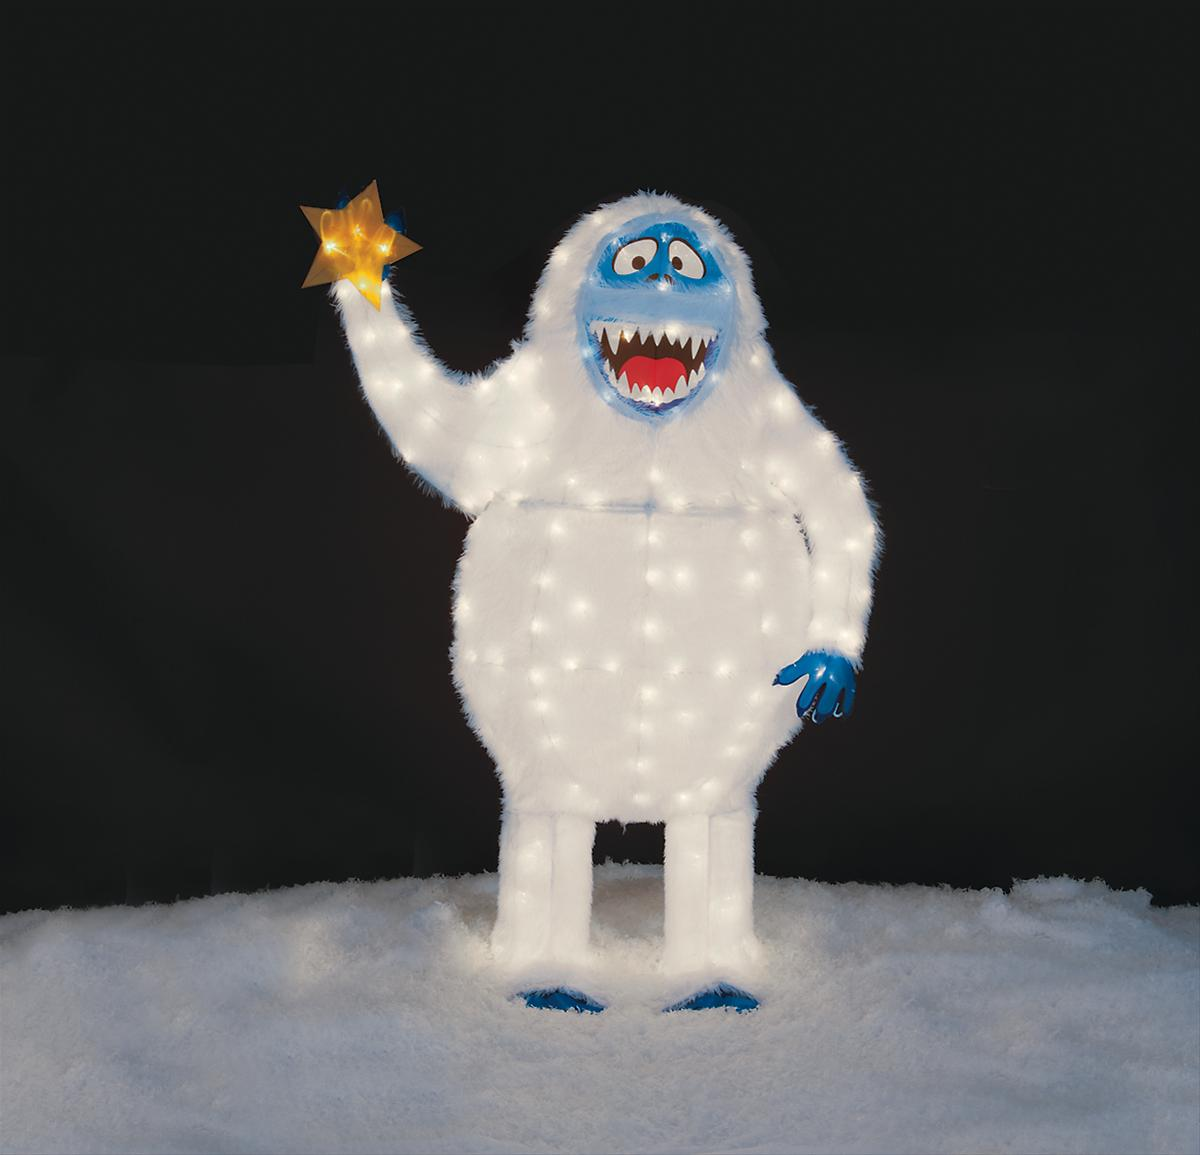 56 bumble tinsel light lawn decoration 50545 free for Abominable snowman christmas light decoration